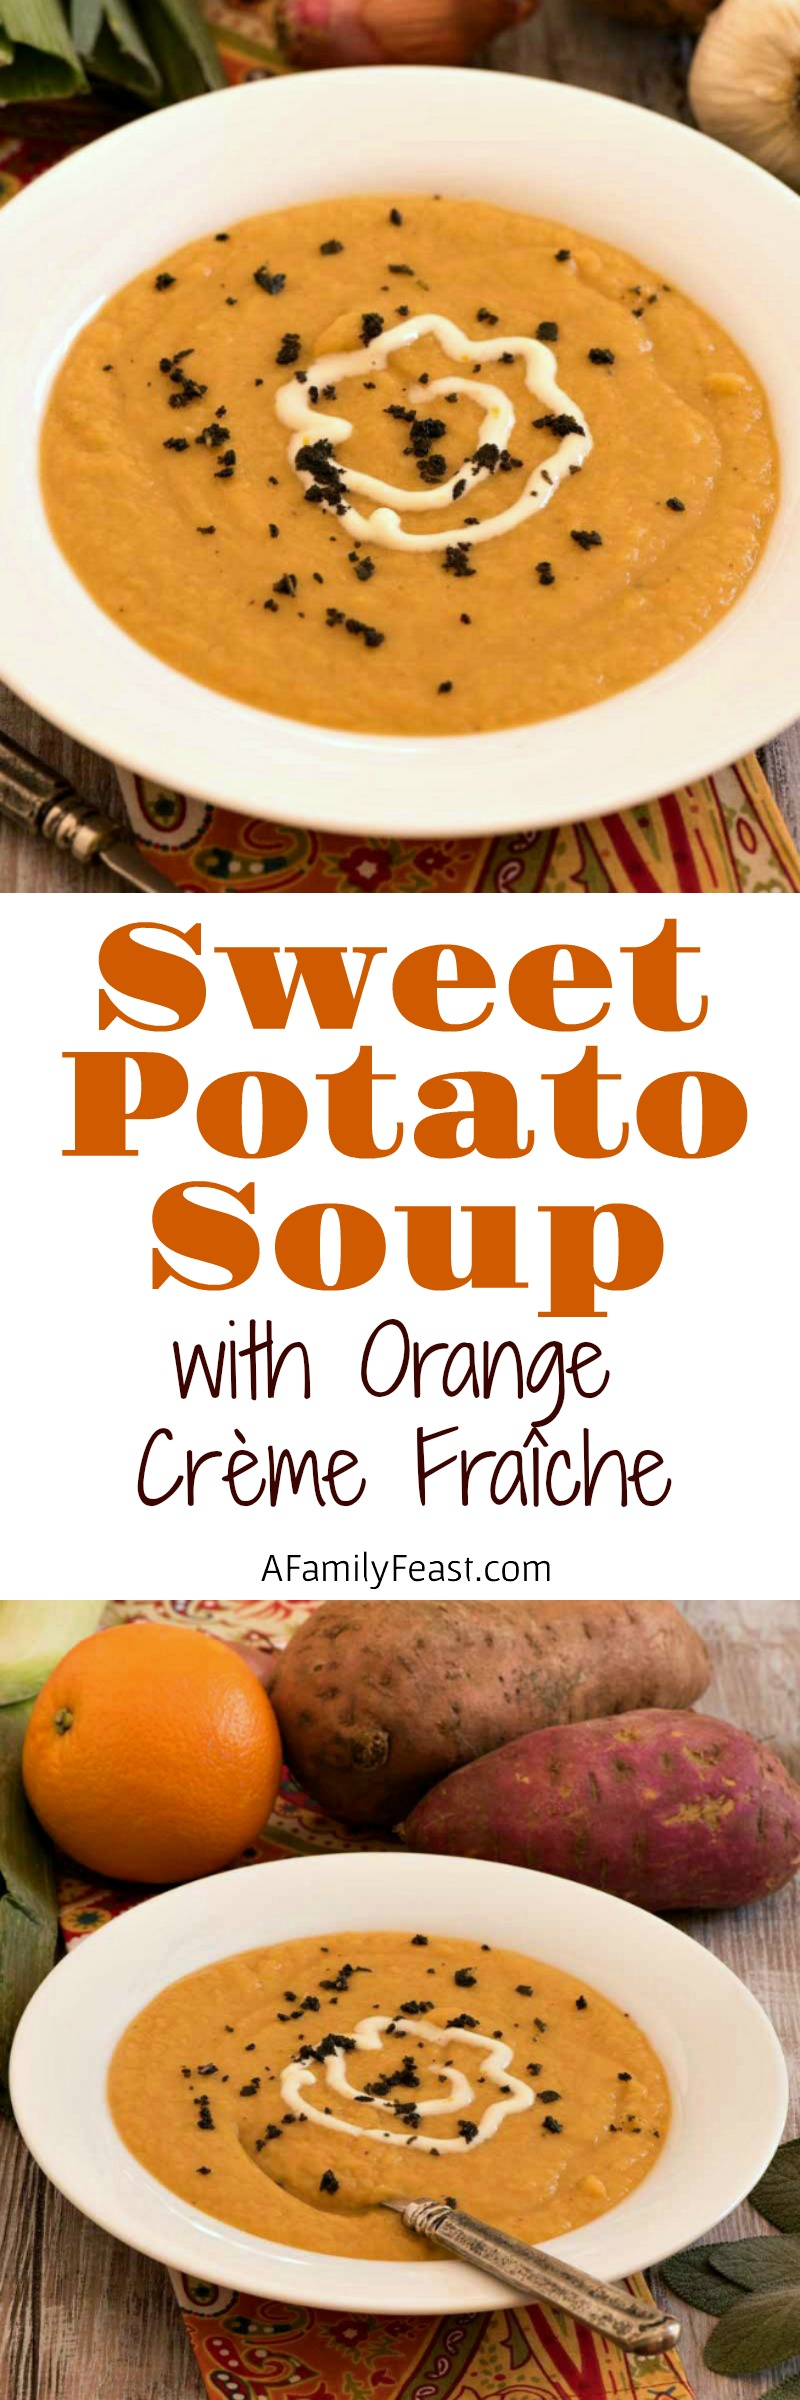 Sweet Potato Soup with Orange Crème Fraîche - Creamy, easy and delicious sweet potato soup topped with an Orange Crème Fraîche and crispy sage.